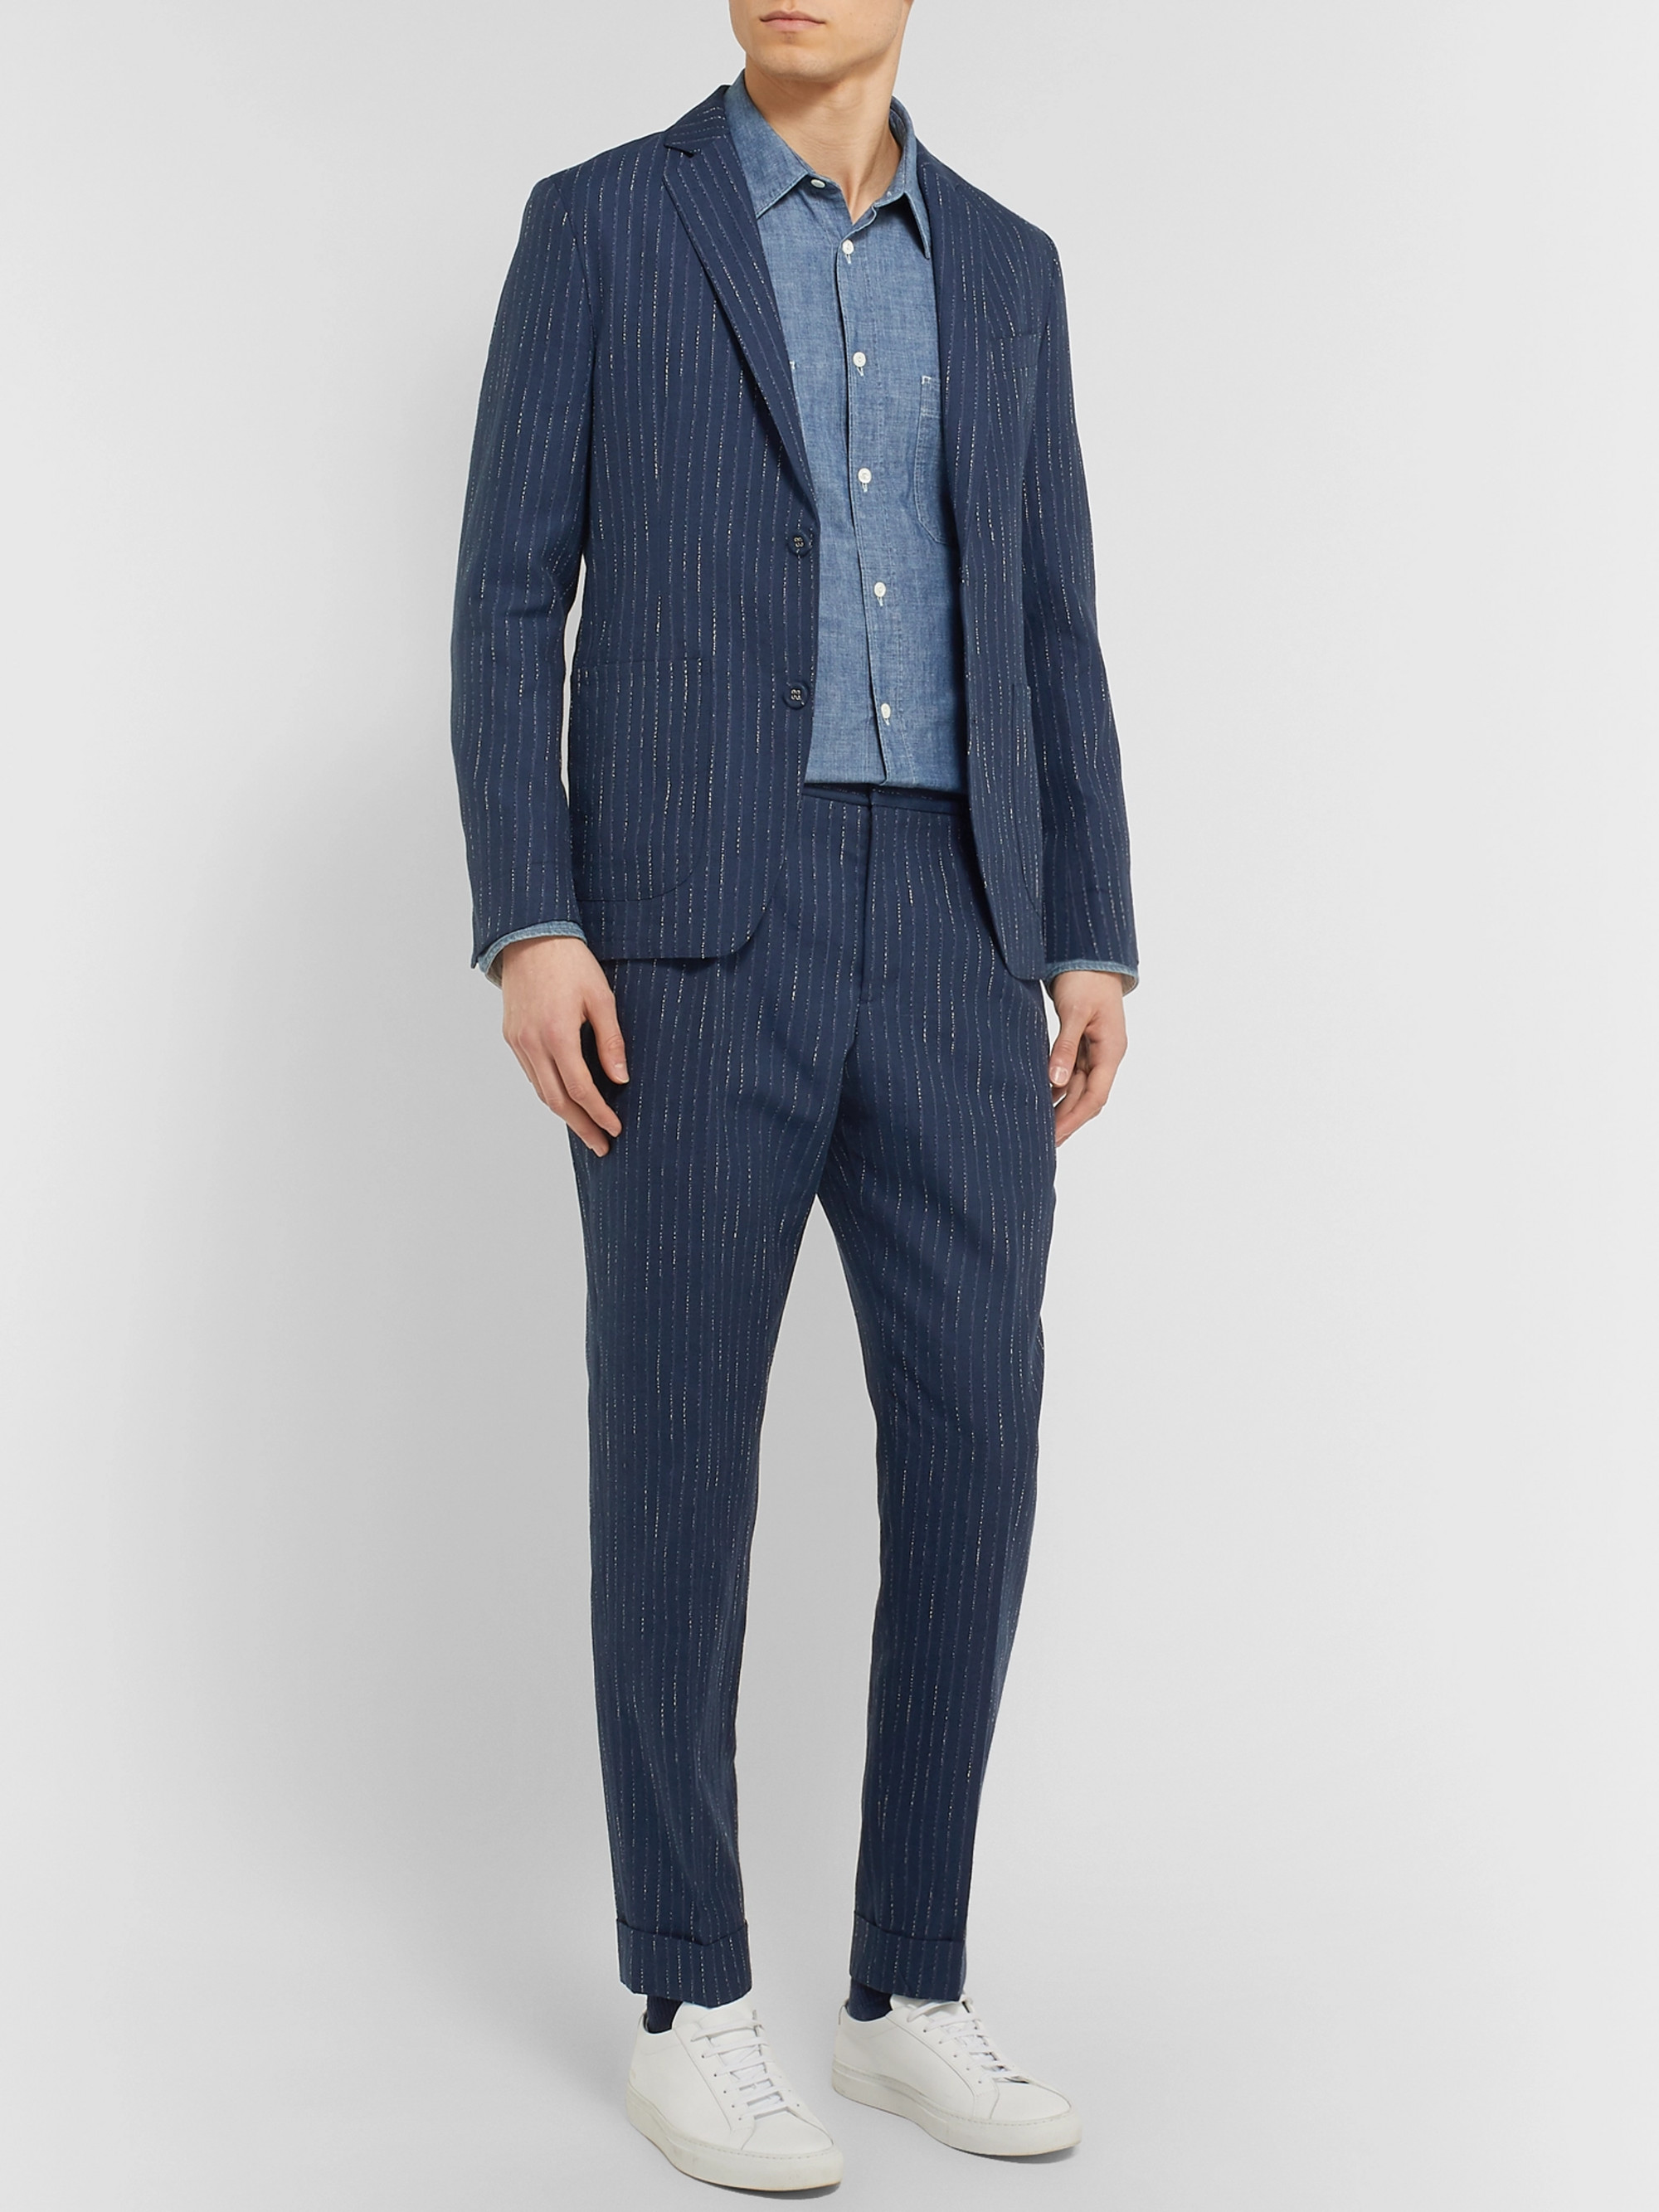 Officine Generale Navy Tapered Pinstriped Woven Suit Trousers